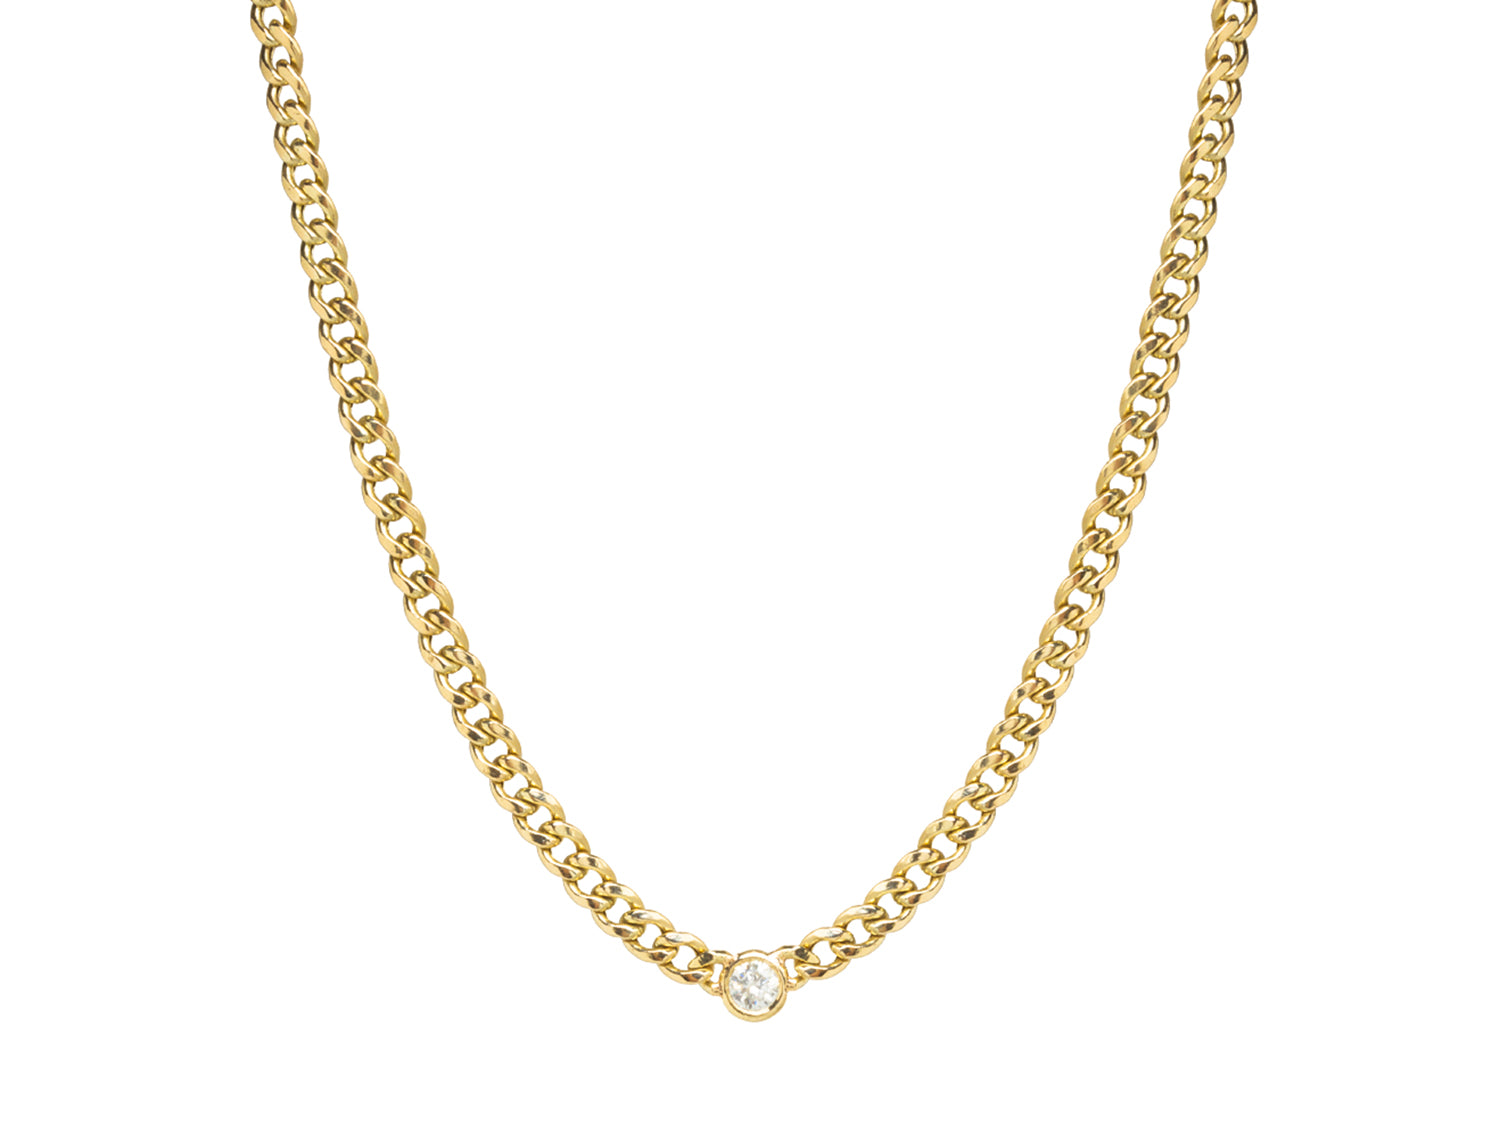 Floating Diamond Curb Chain Necklace